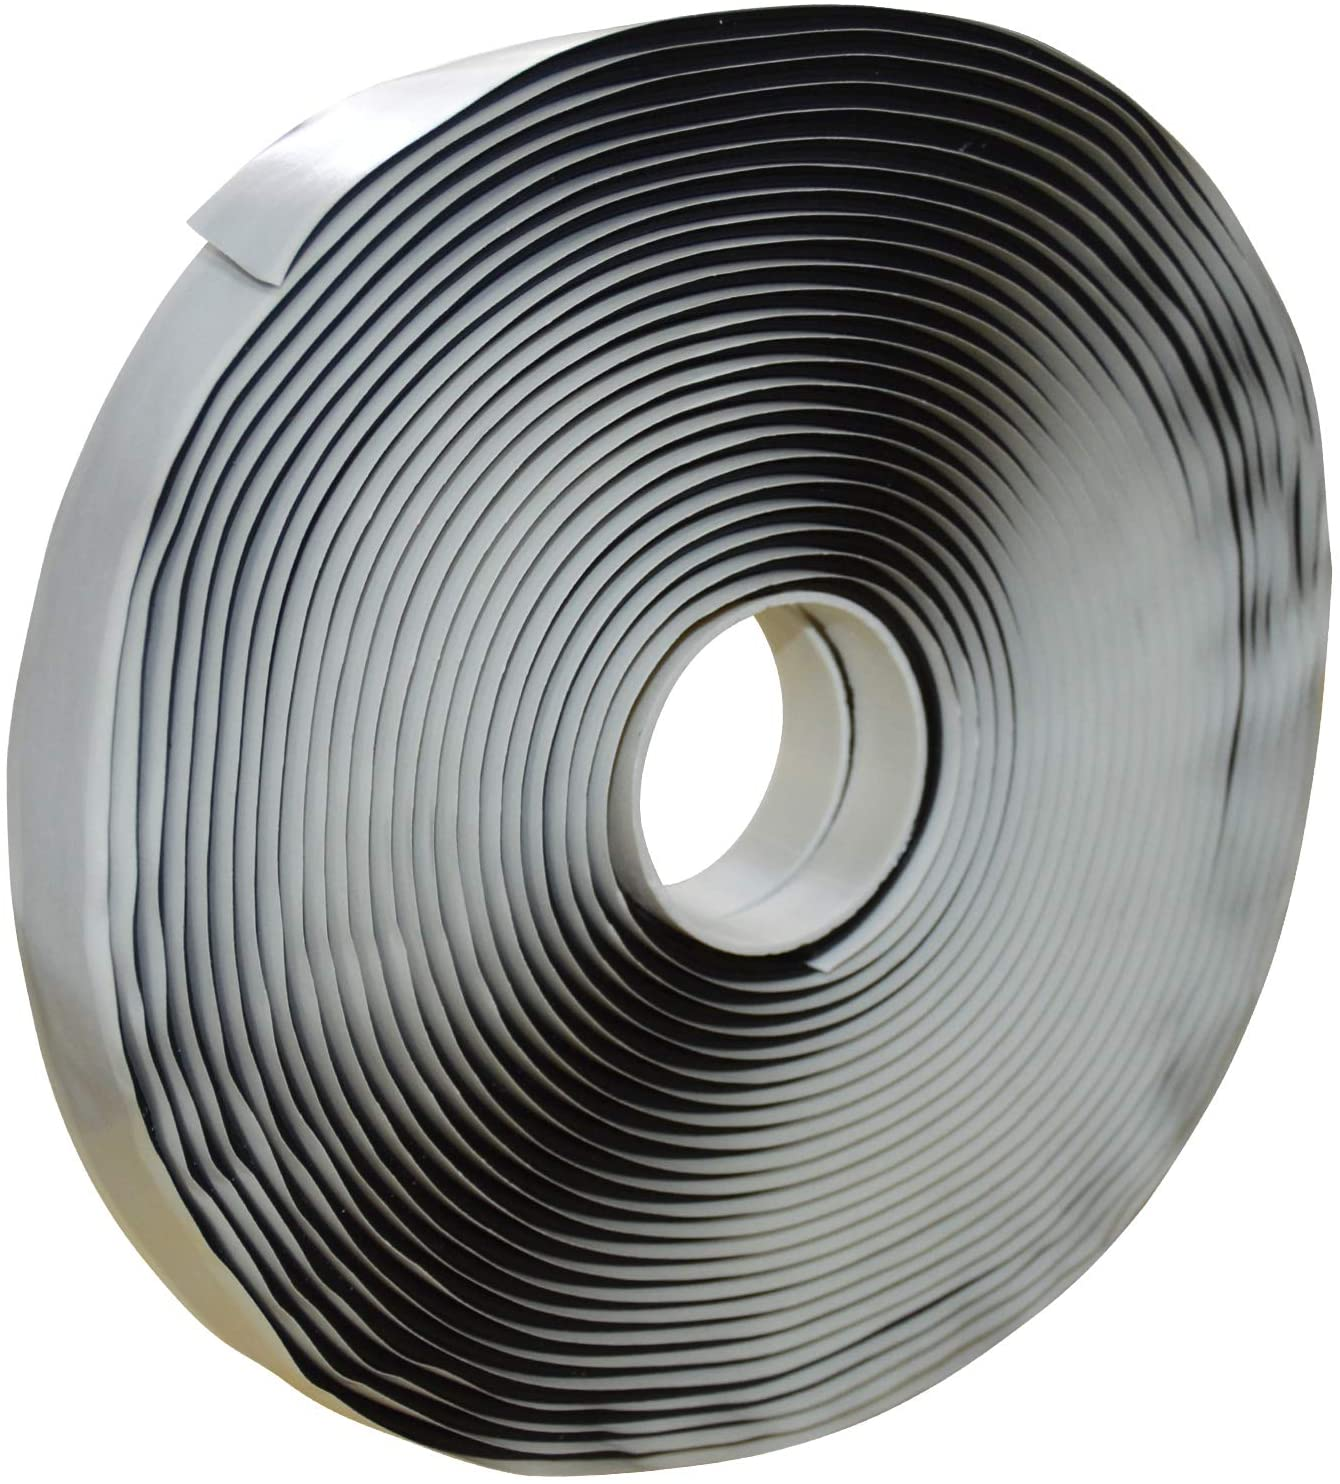 LLPT Butyl Seal Putty Tape Black 1/8 Inch Thick x 3/4 Inch Wide x 33 Feet Extra Thick for Leak Proof RV Repair Window Glass Boat Sealing EPDM Roof Patching (BST343)